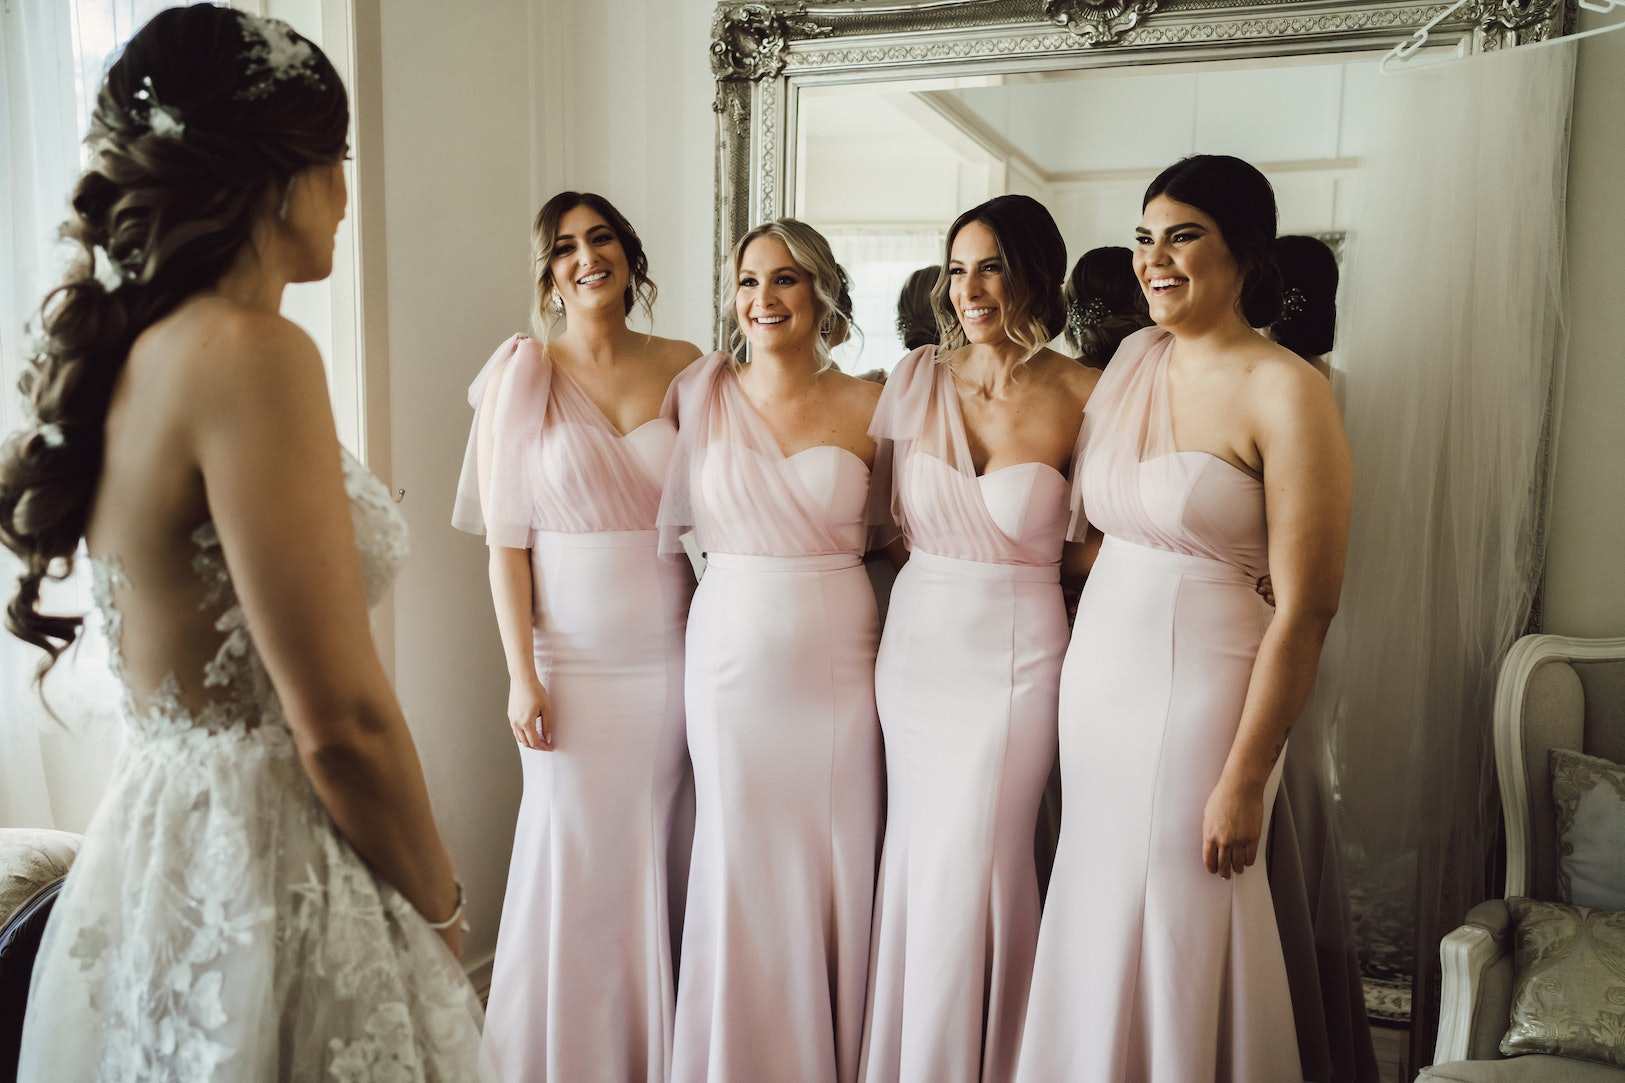 4 Bridesmaids standing in front of bride laughing